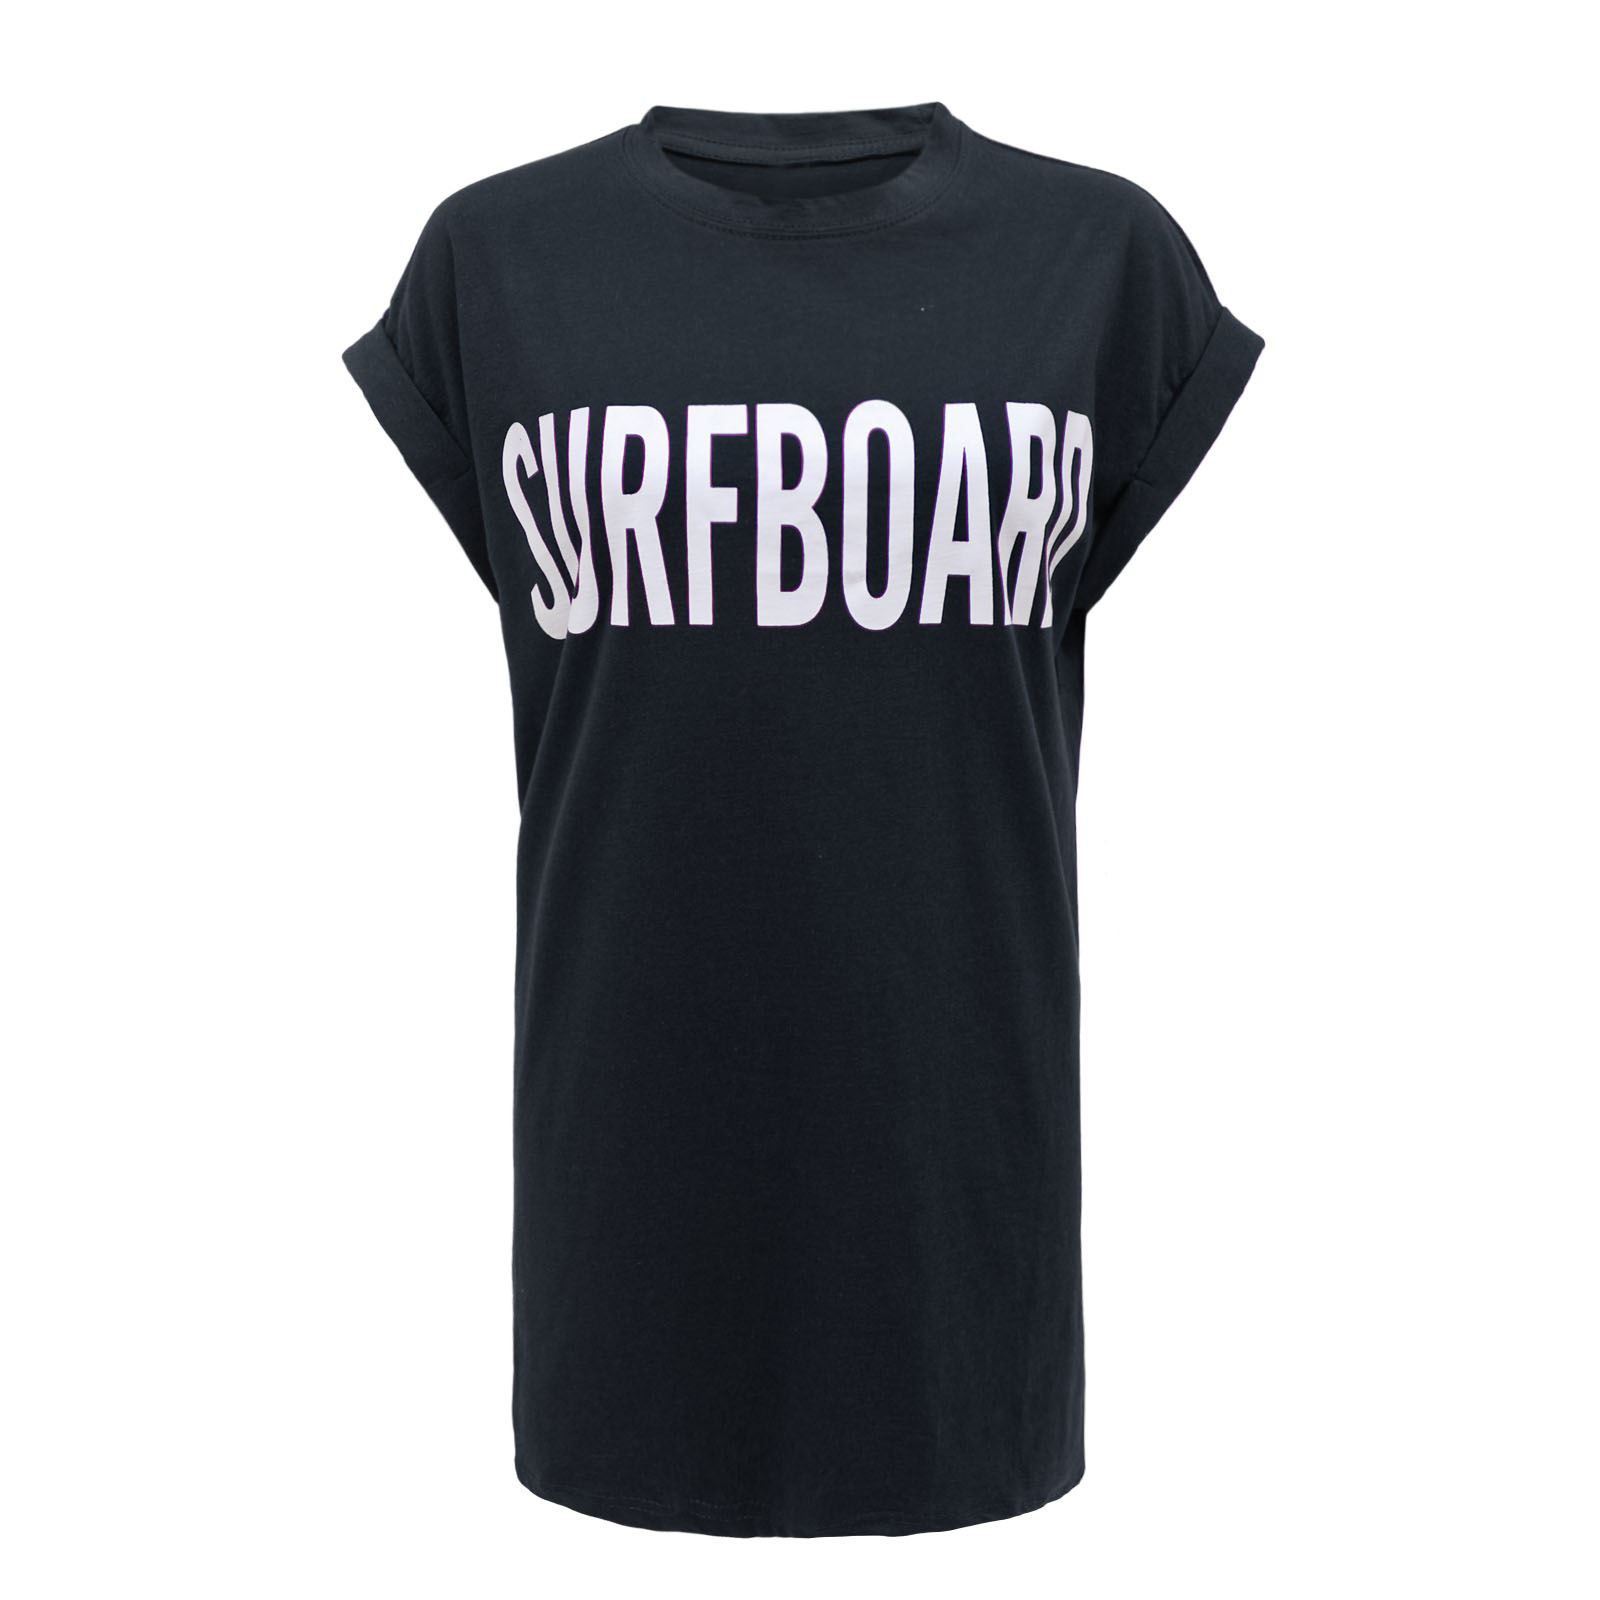 SURFBOARD T-SHIRT CELEBRITY BEYONCE FLAWLESS YONCE JELOUS ...